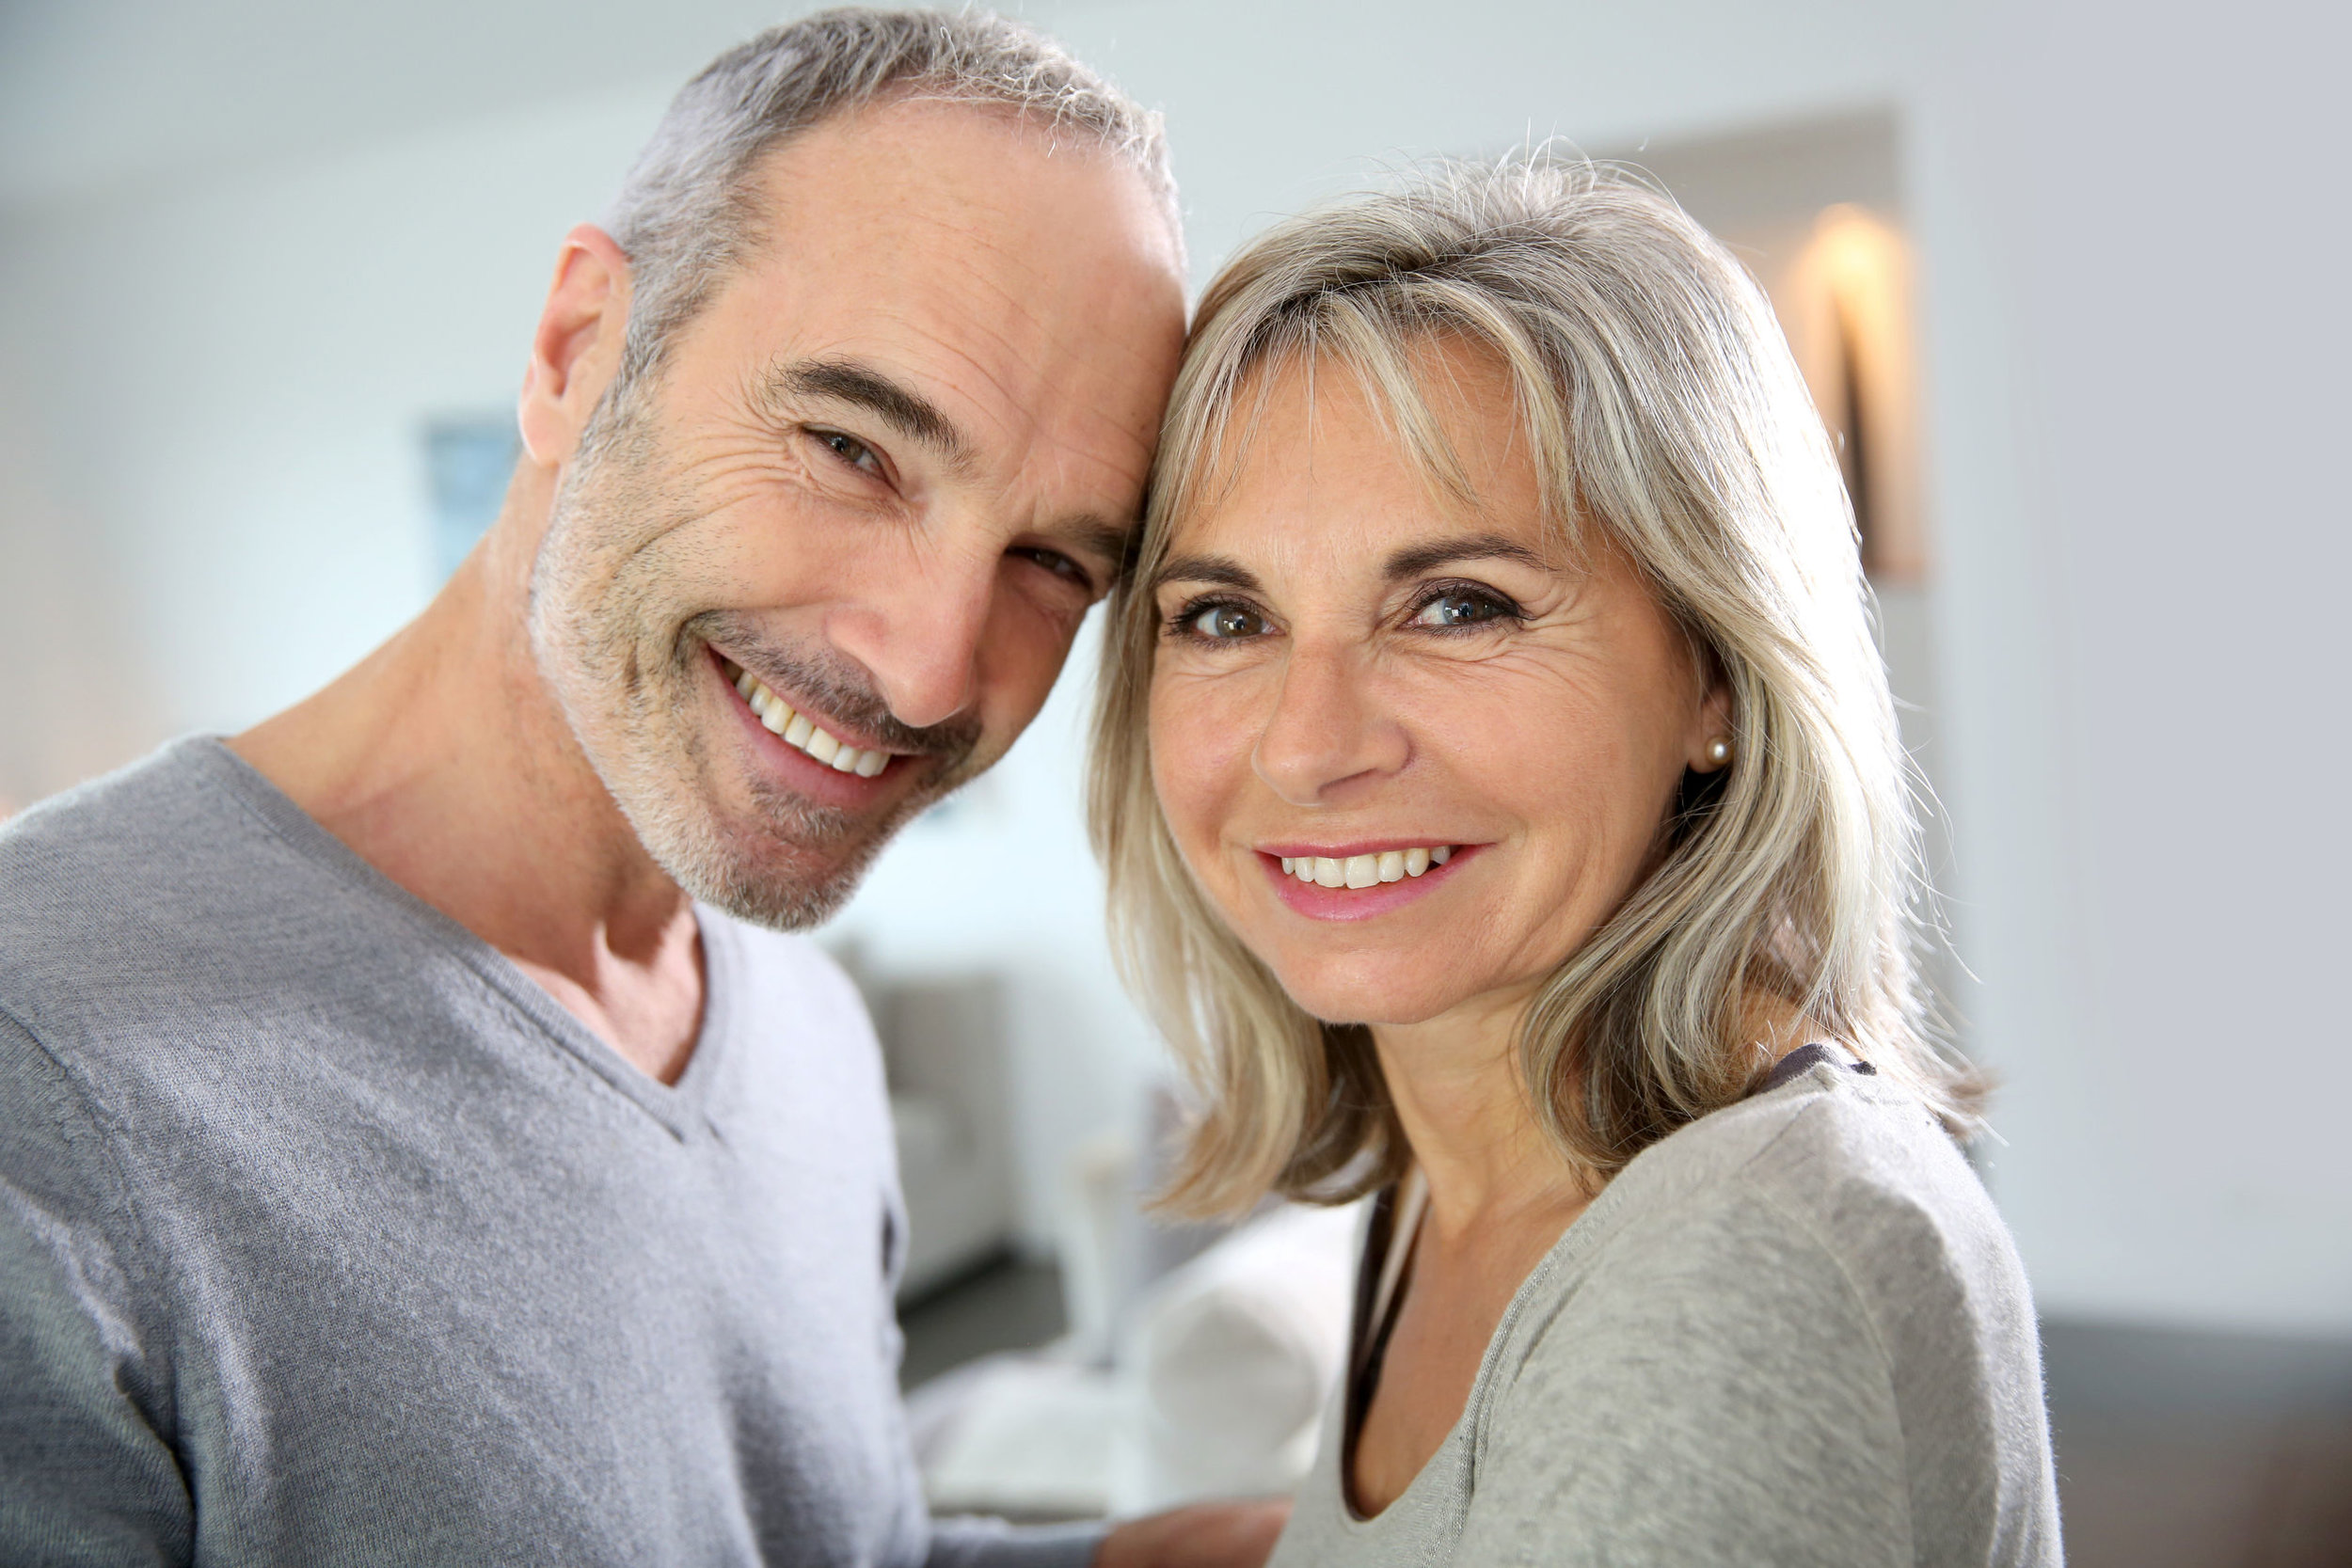 Dr. Fanning provides many services, including cosmetic dentistry procedures.